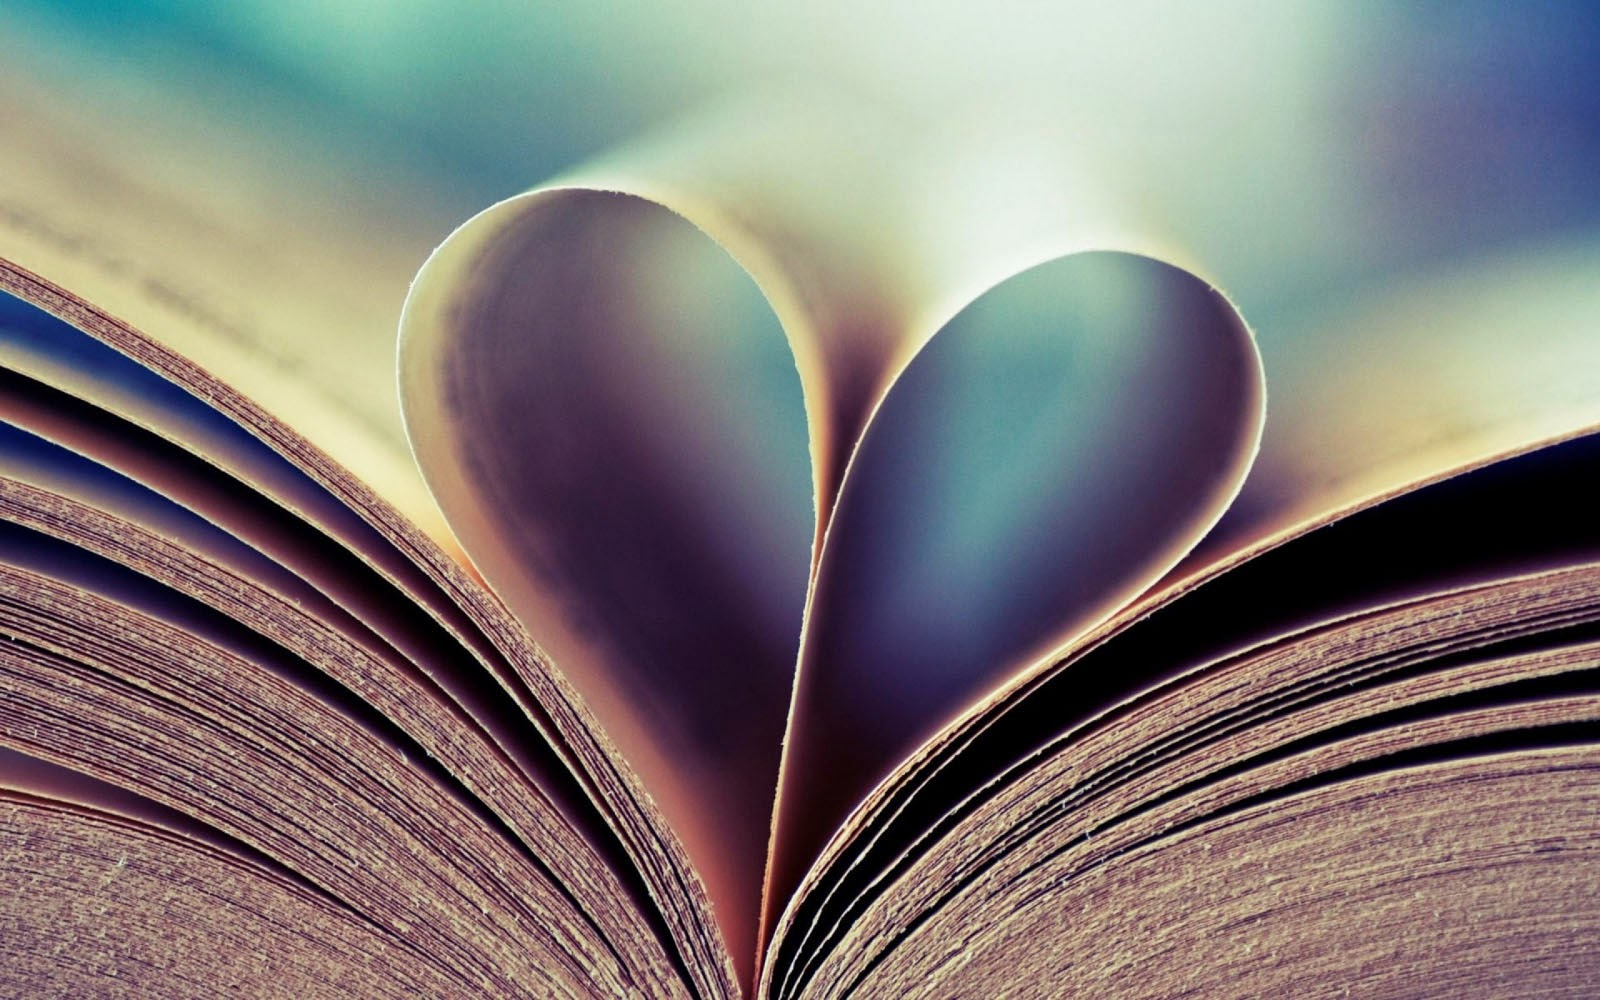 wallpapers: Heart Book Wallpapers